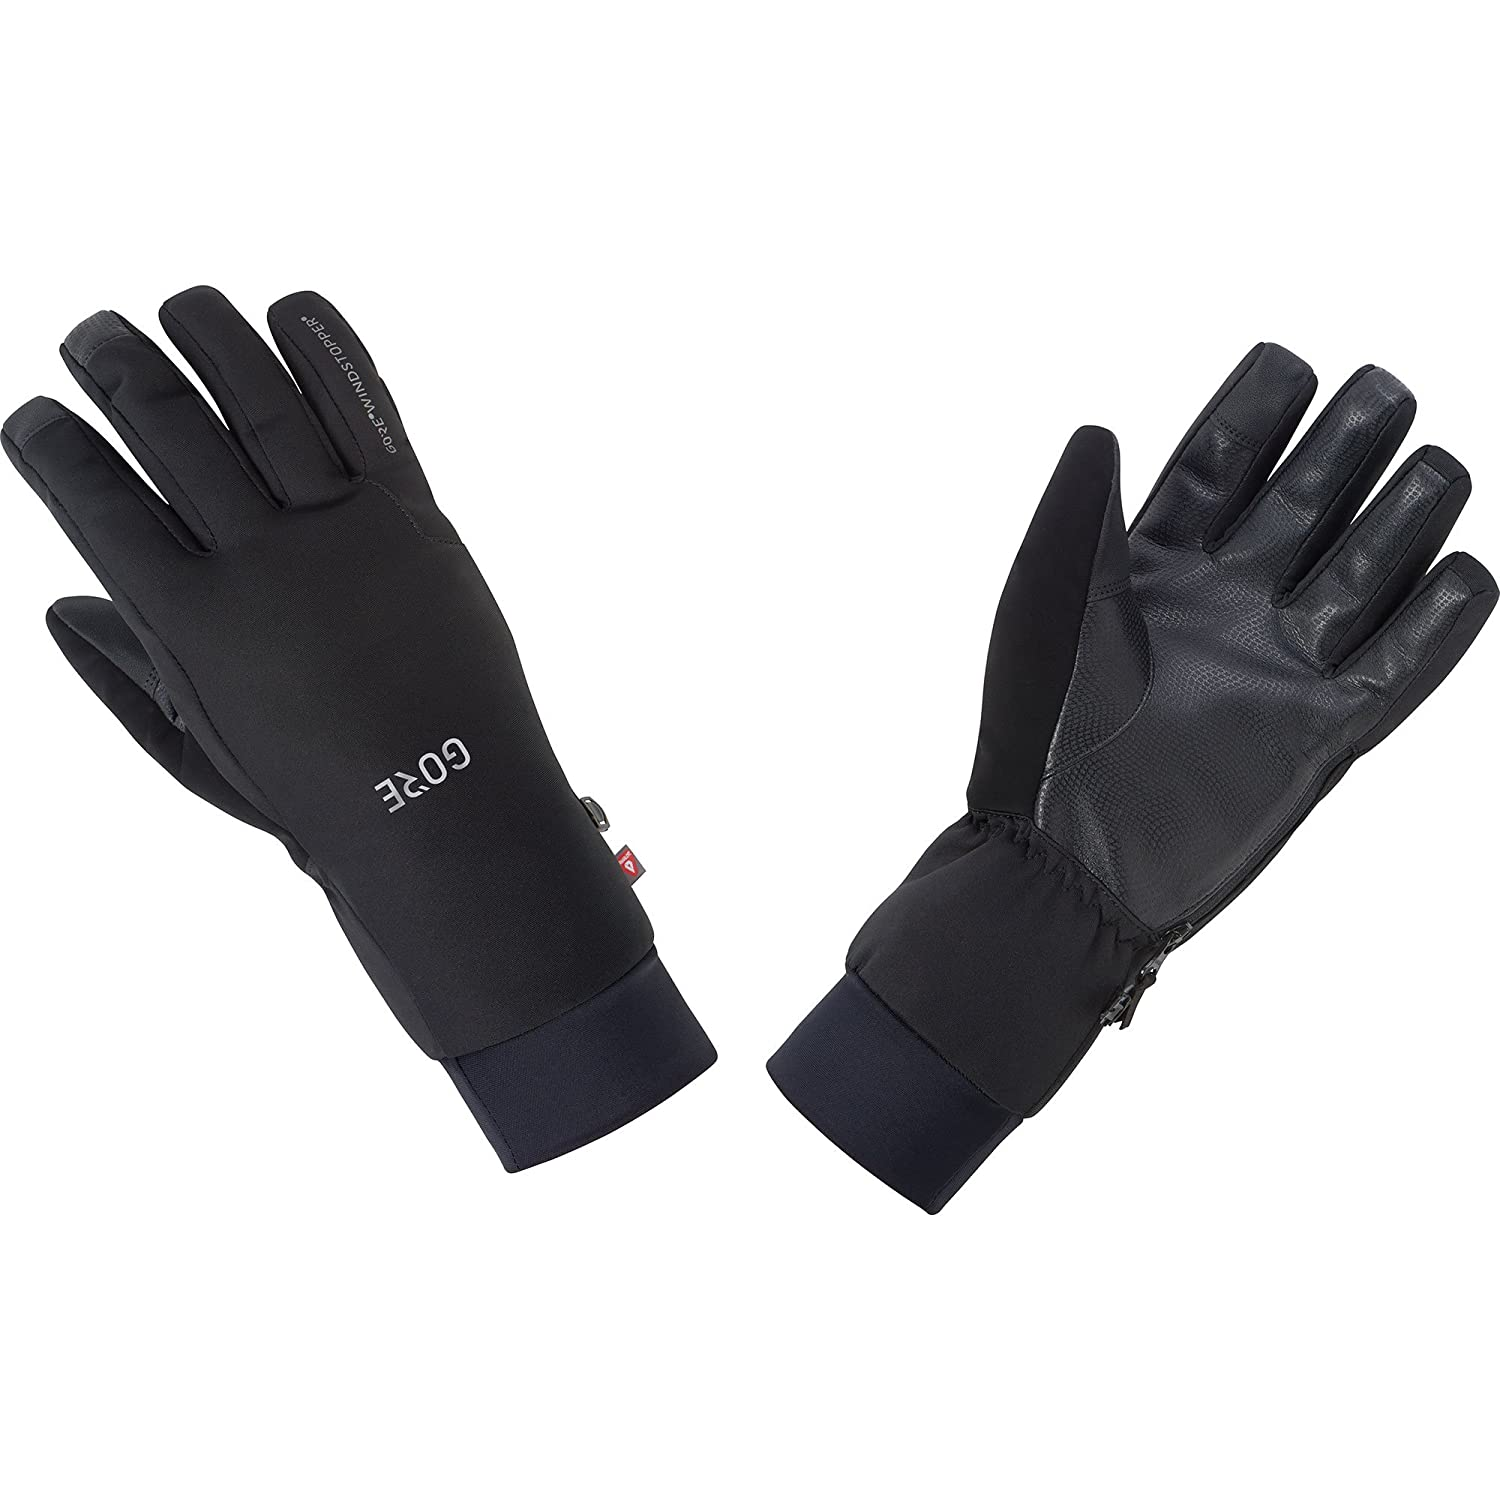 GORE Wear Unisexe Gants coupe-vent, M GORE WINDSTOPPER Insulated Gloves, 100386